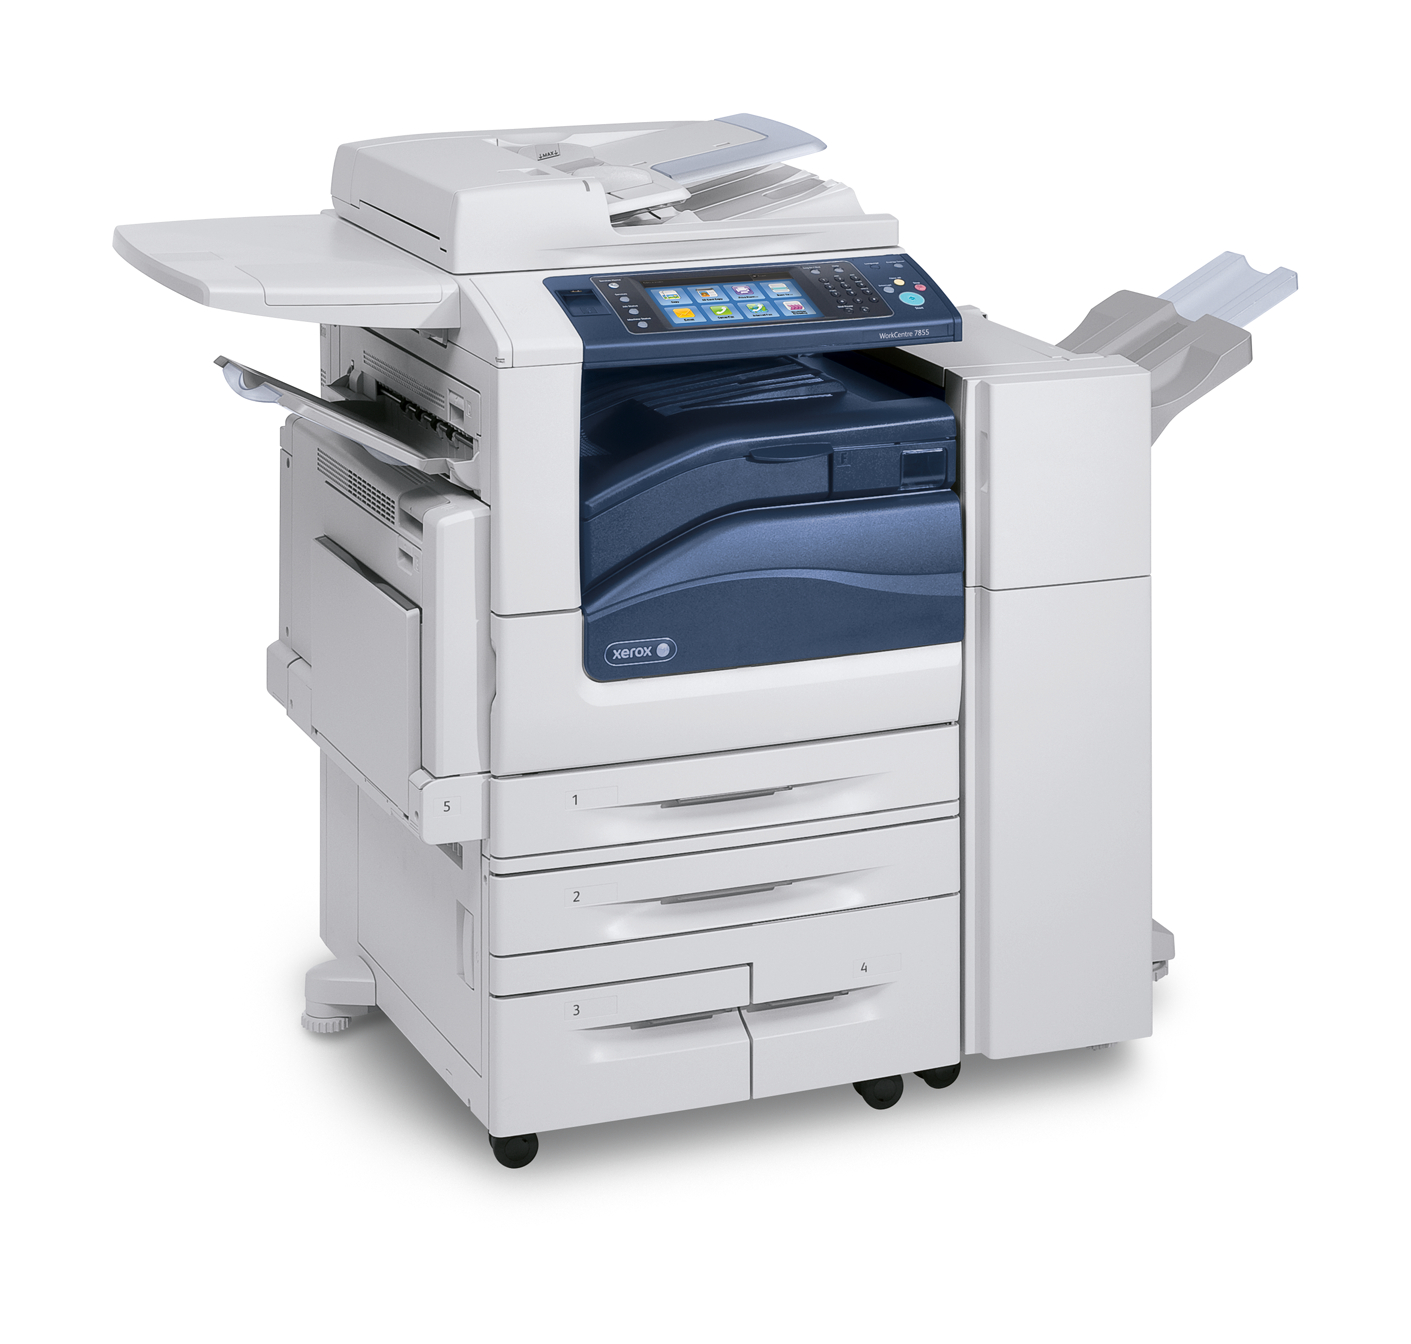 7845 xerox Copier Lease Rates 55014, 55025, 55038, 55110, 55126